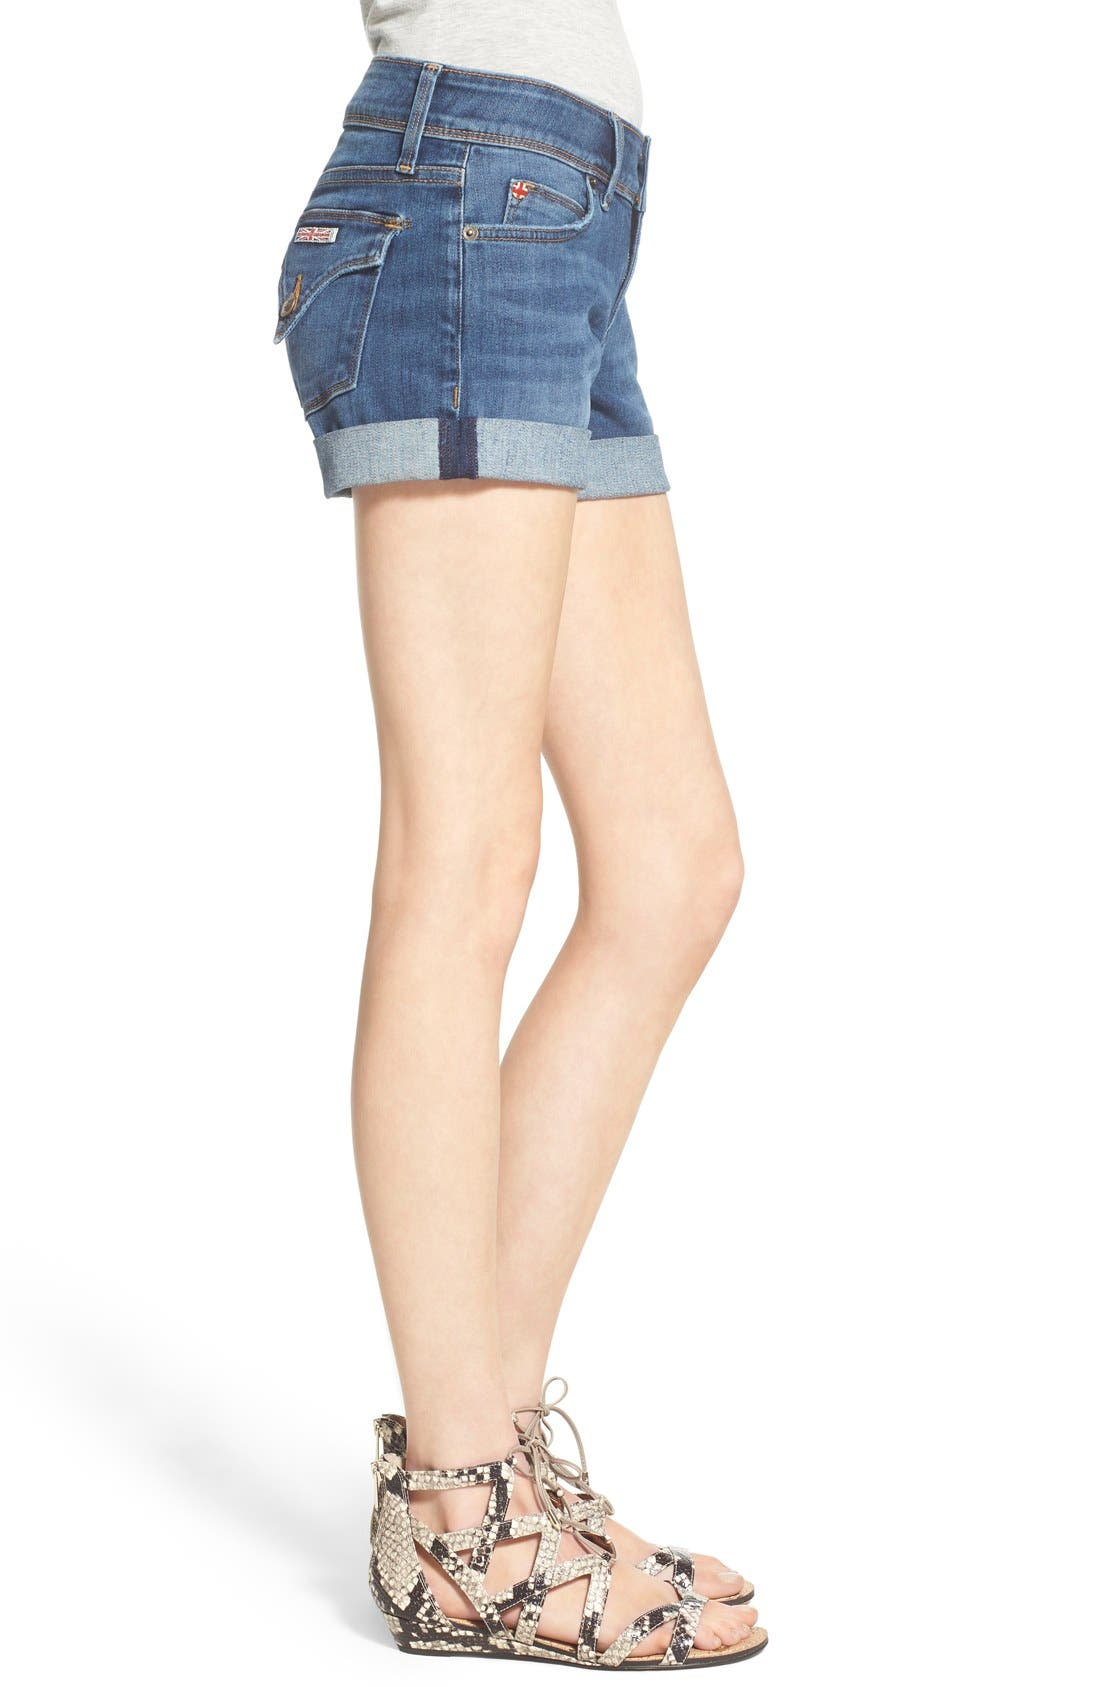 'Croxley' Cuffed Denim Shorts,                             Alternate thumbnail 11, color,